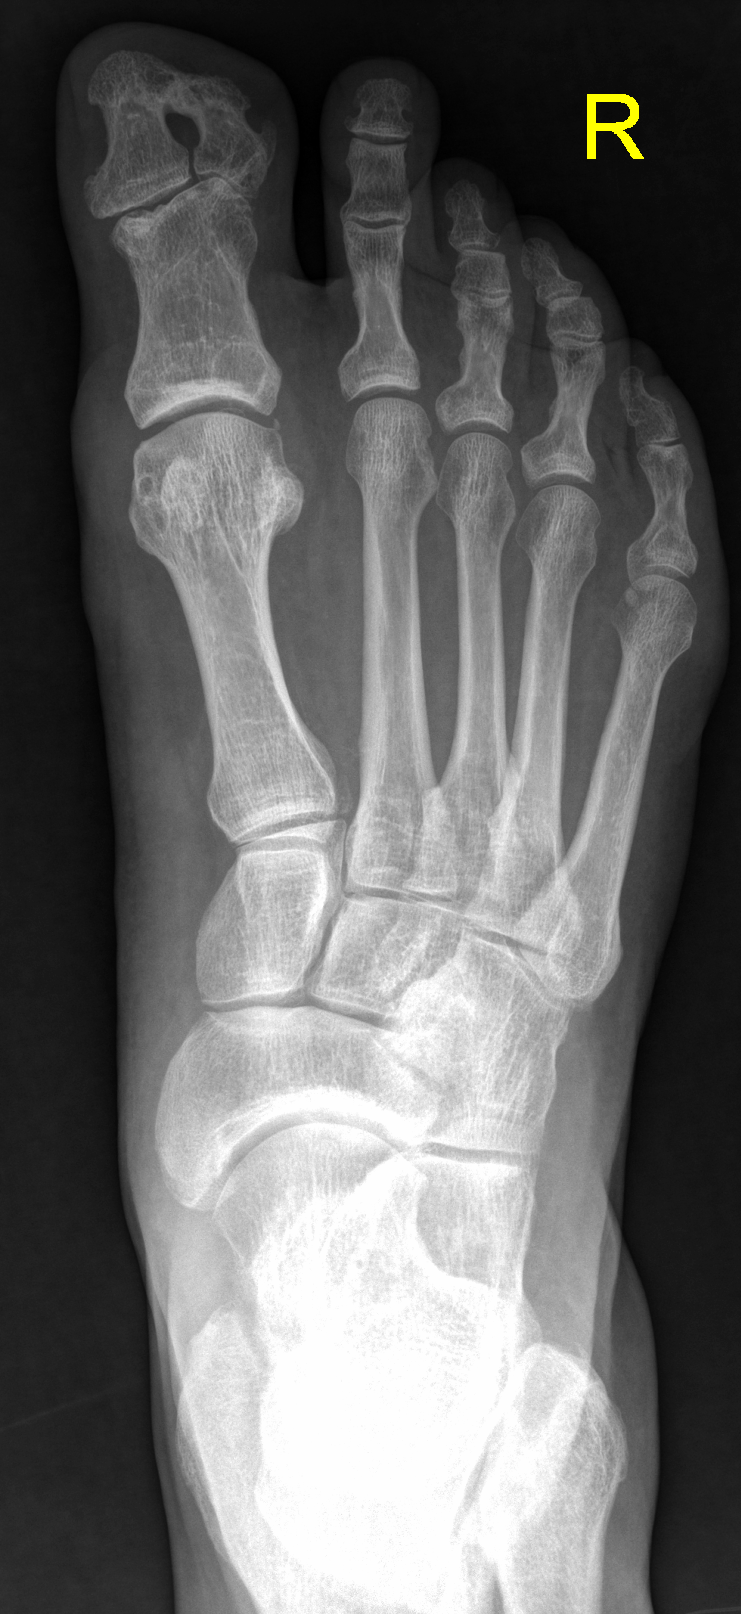 Duplicated distal phalanx of great toe (polydactyly) | Radiology ...